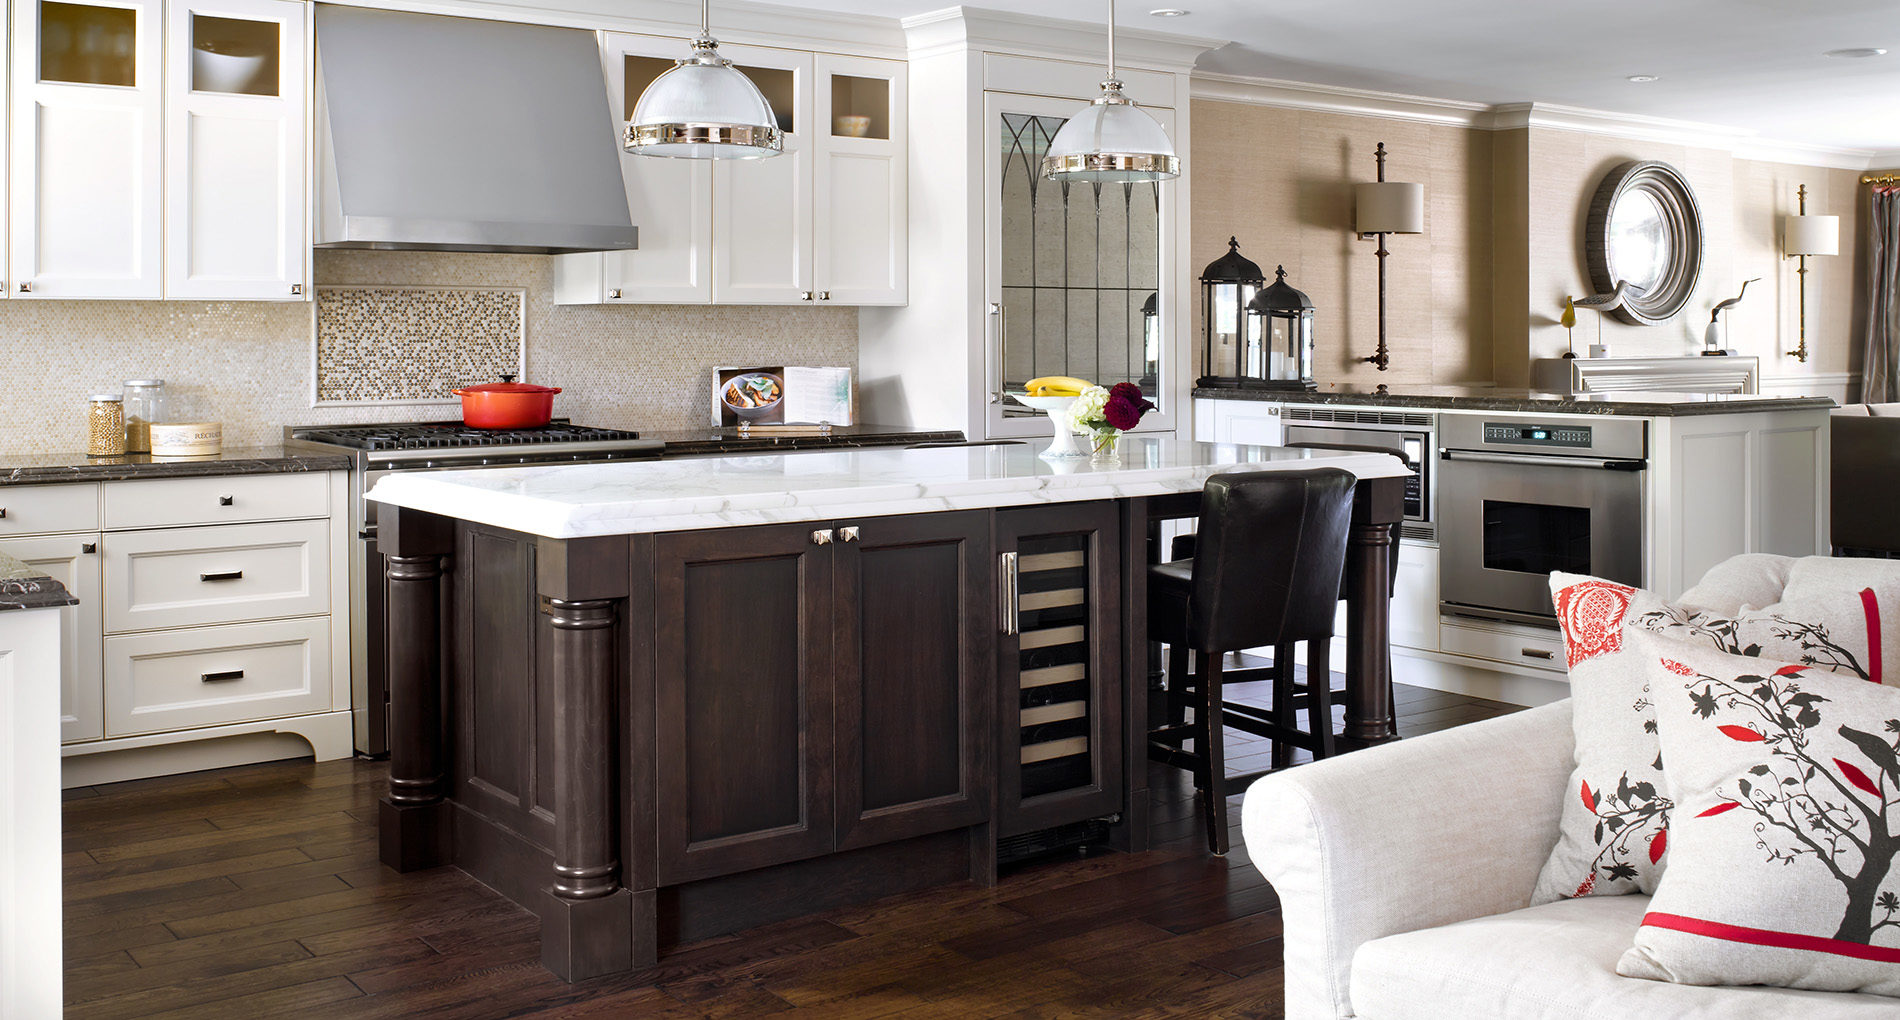 Kitchen Renovation Foresthill Buckingham Slider